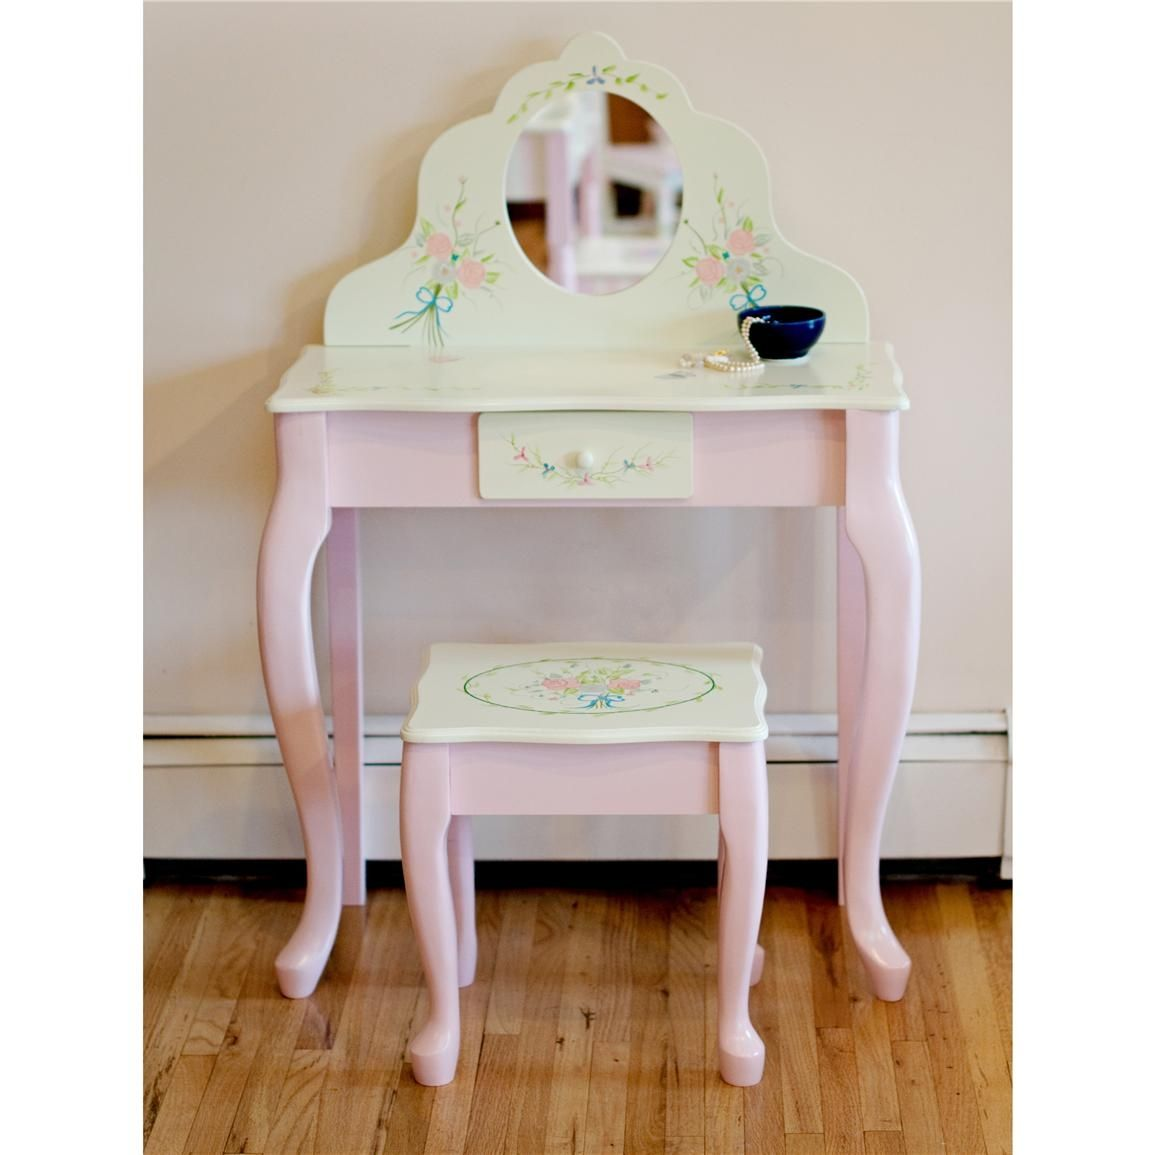 ChildrenS Vanity Table Sets   http://lachpage.com   Pinterest ...